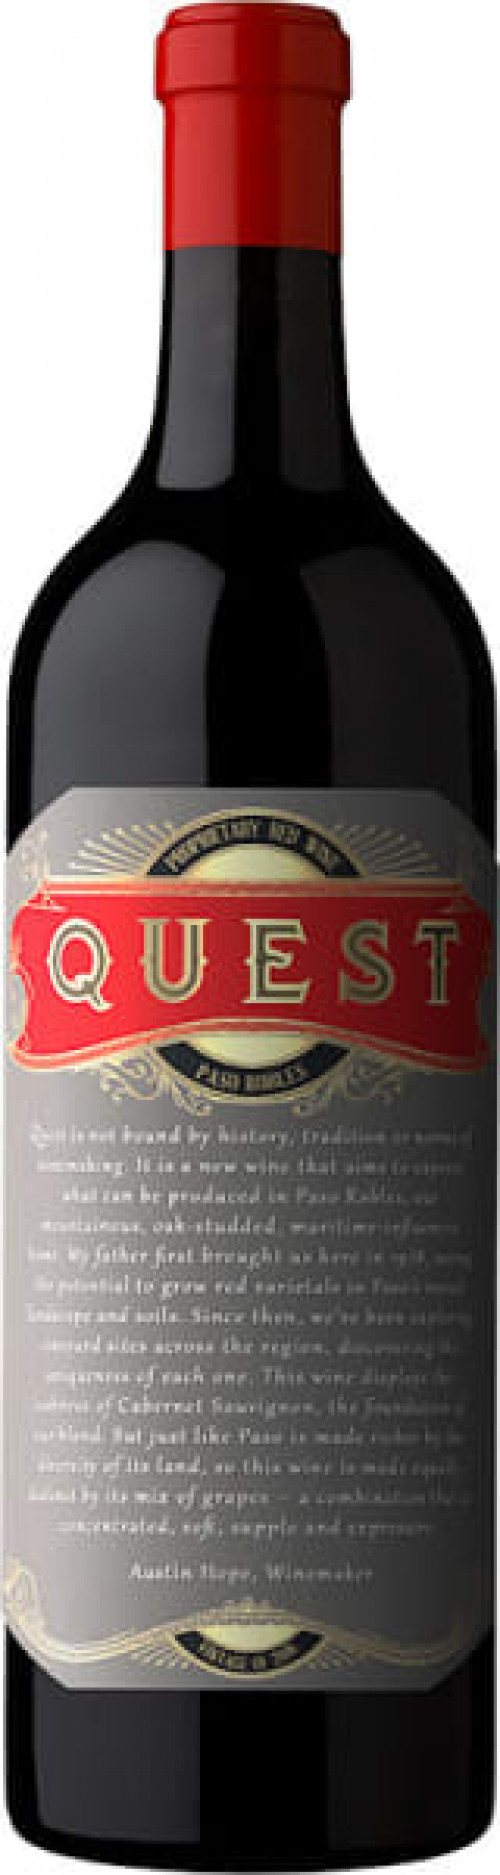 2018 Quest Red Blend 750ml